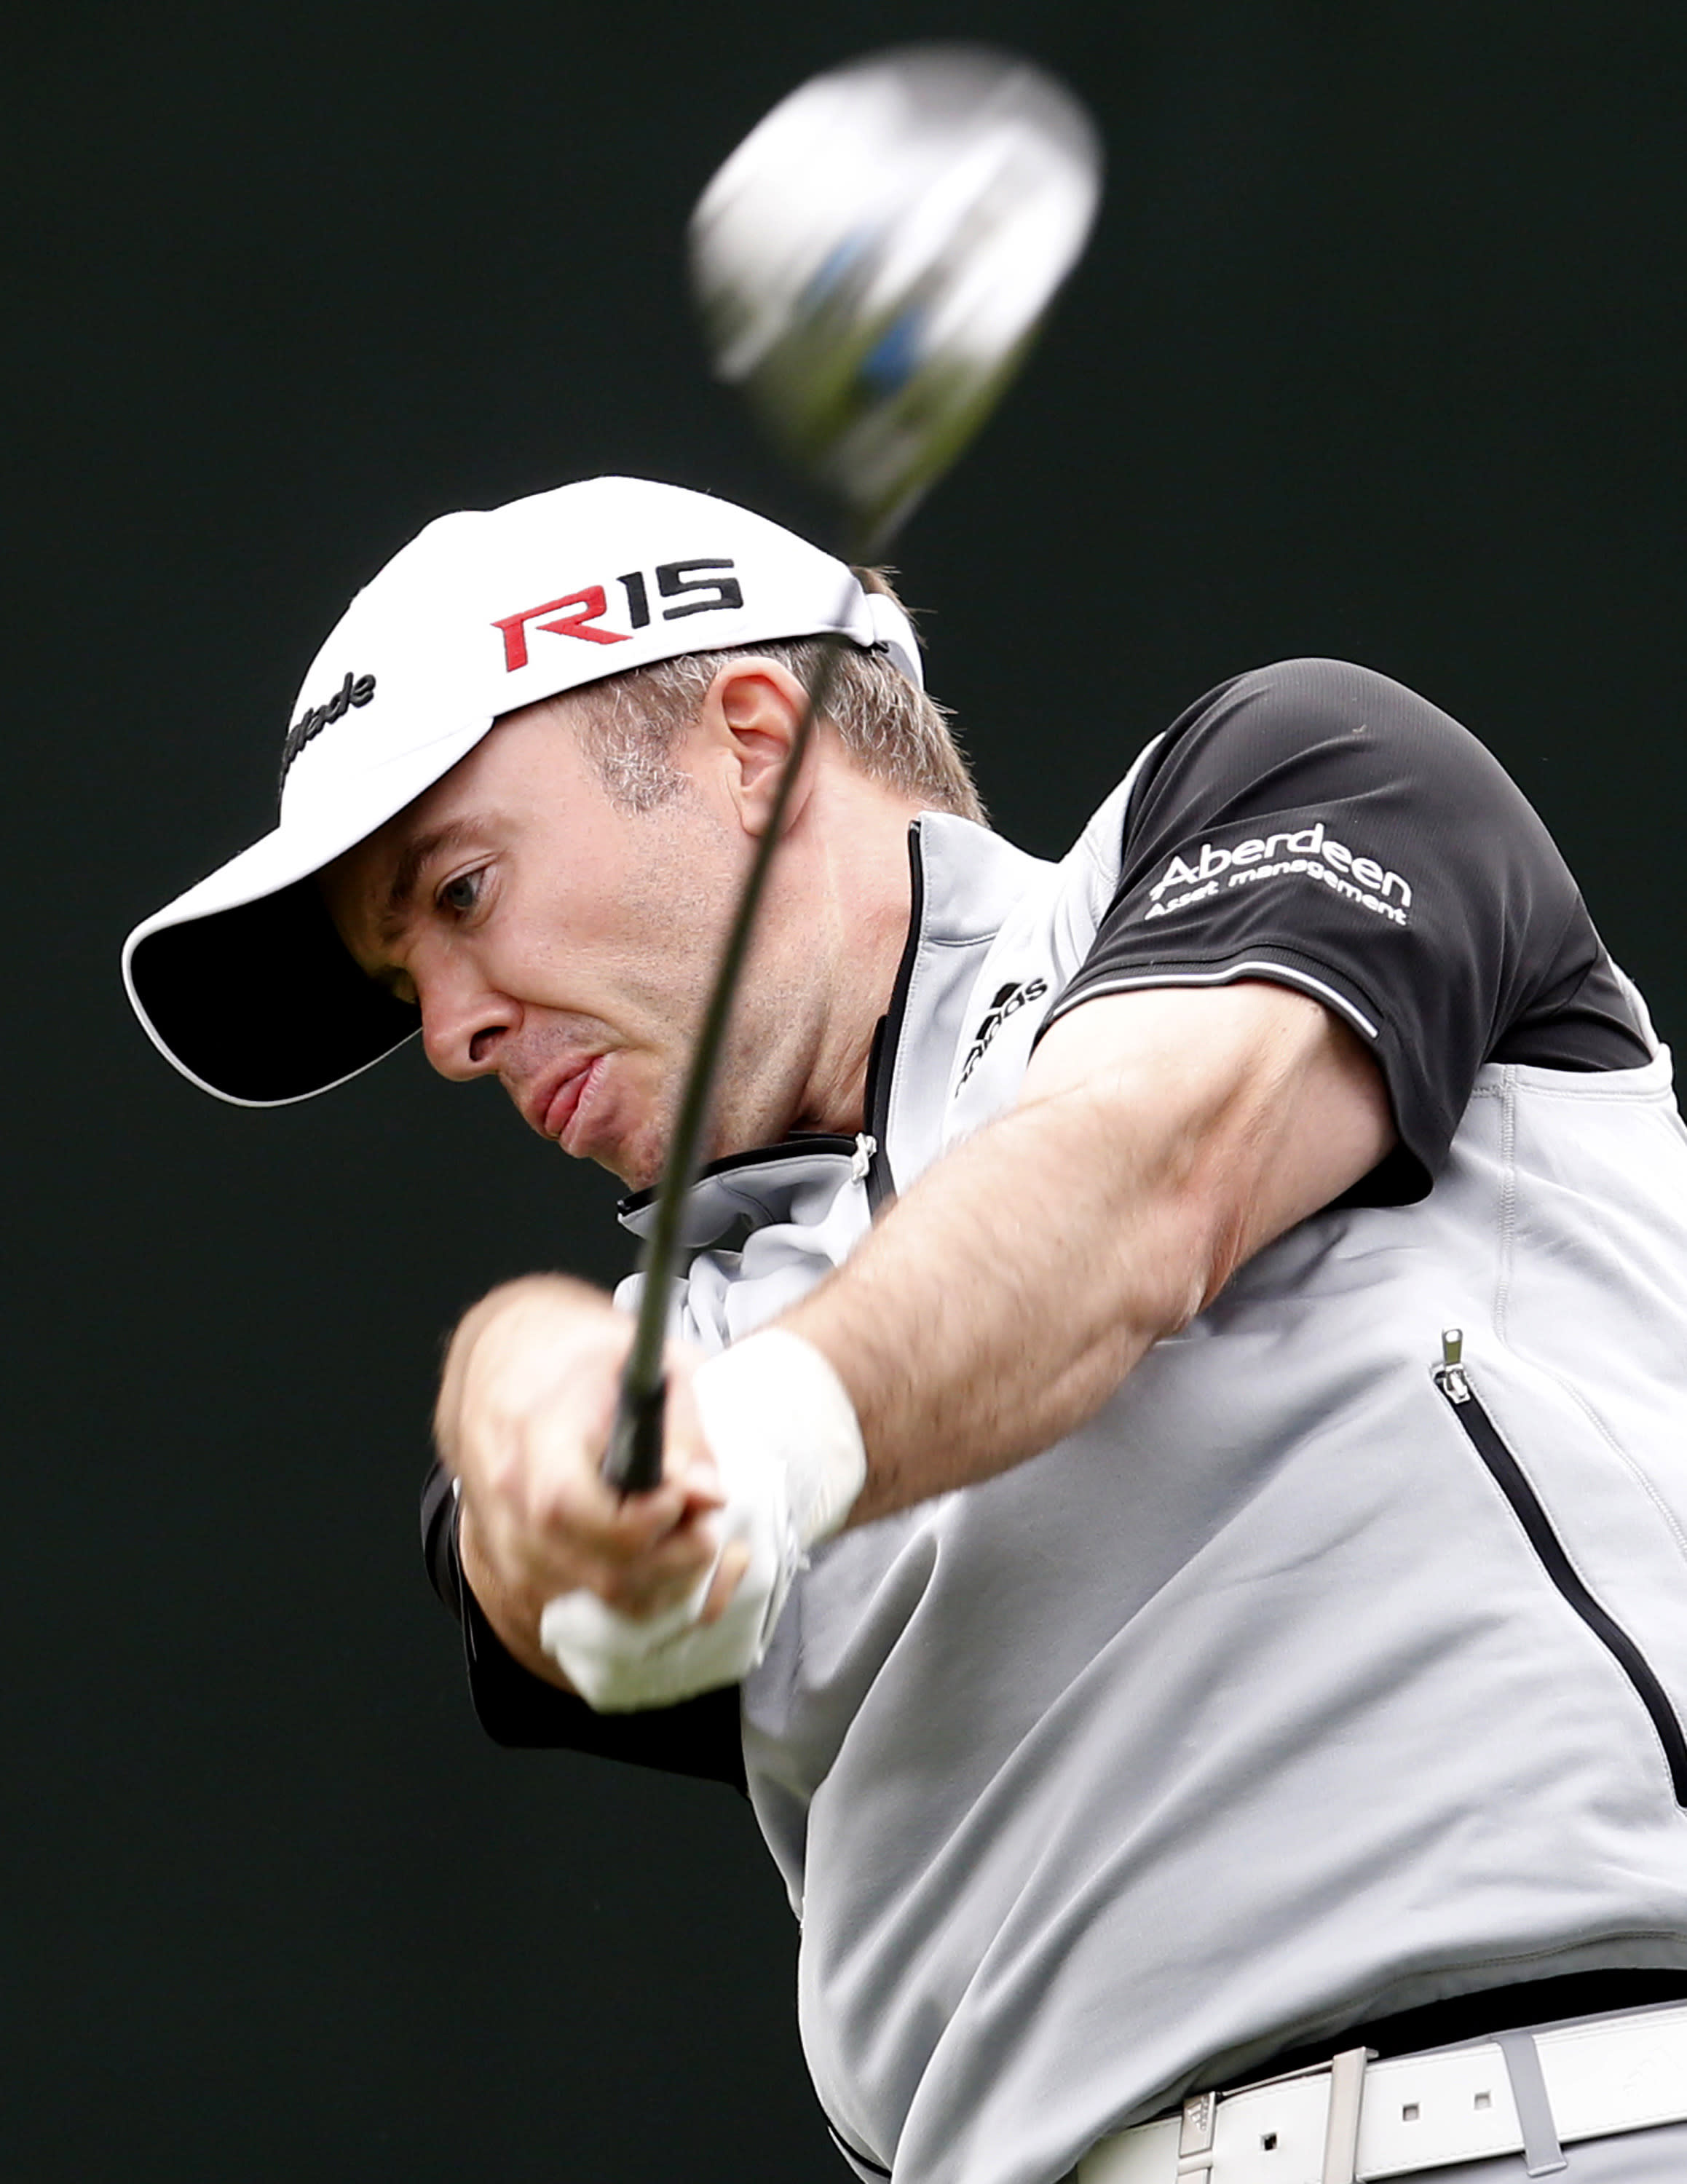 Laird takes a 3-shot lead in Phoenix Open